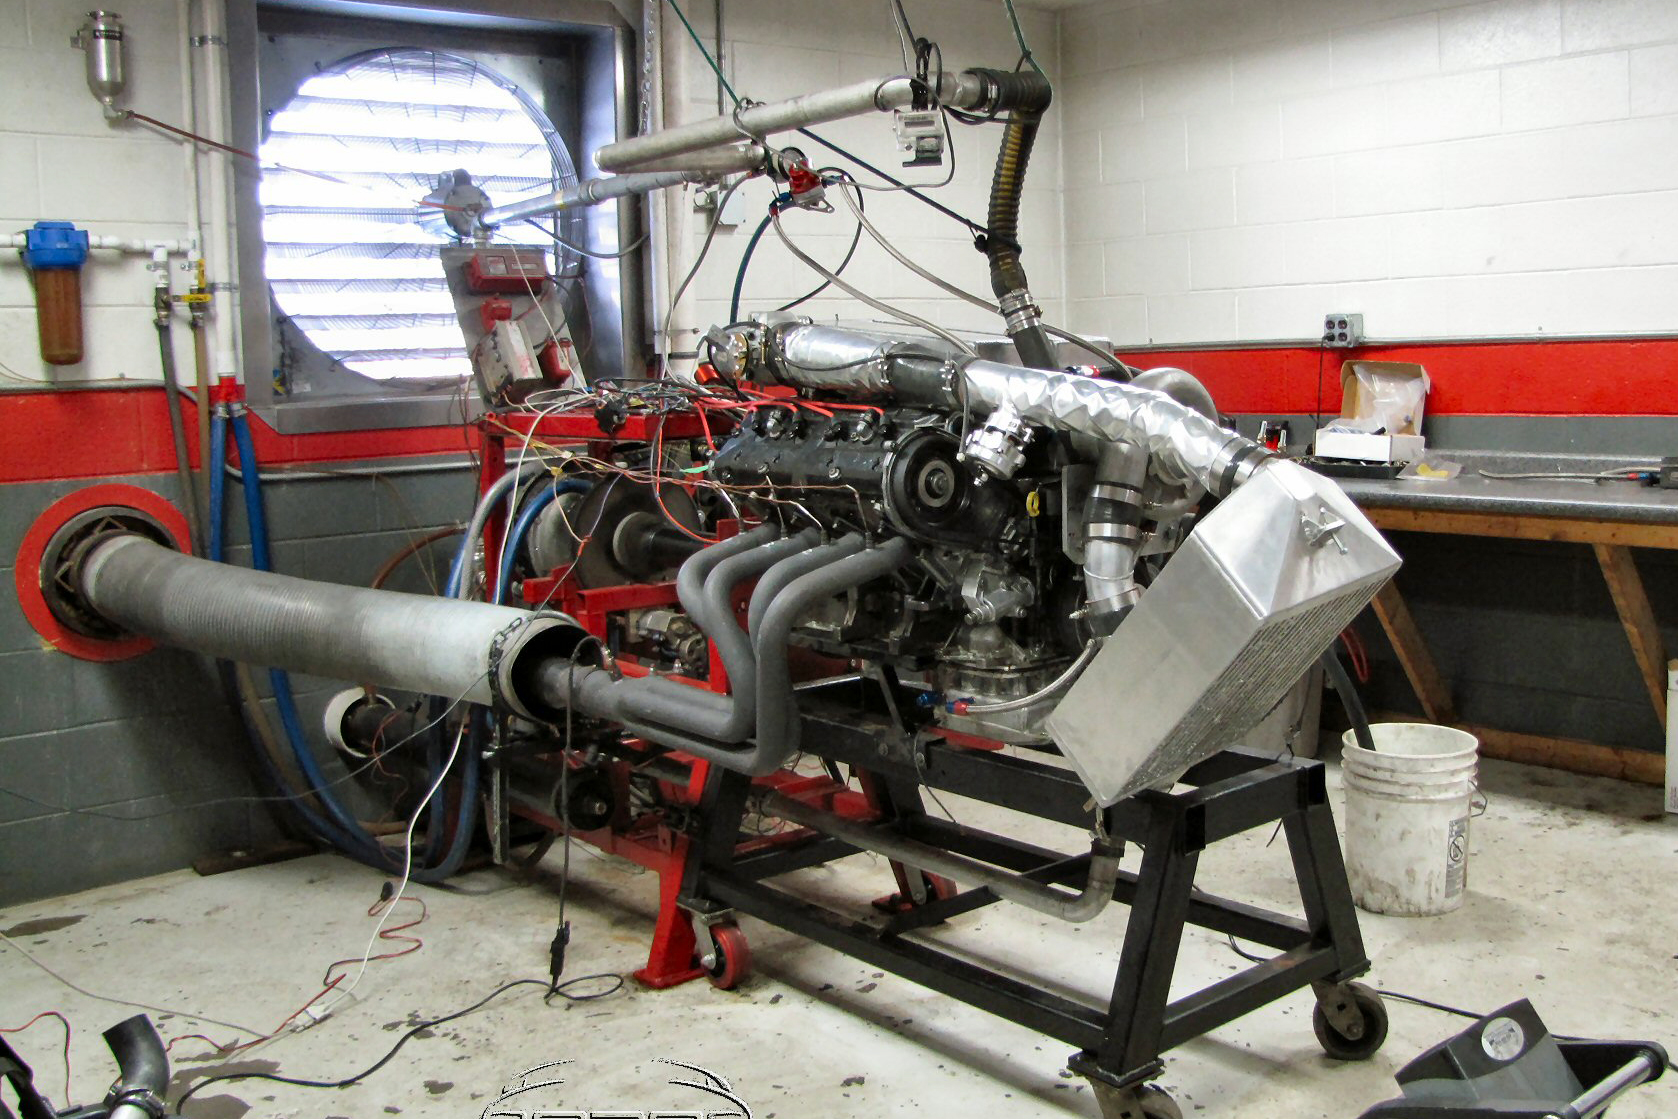 hight resolution of 900 horsepower from a supercharged 30 year old porsche 928 engine